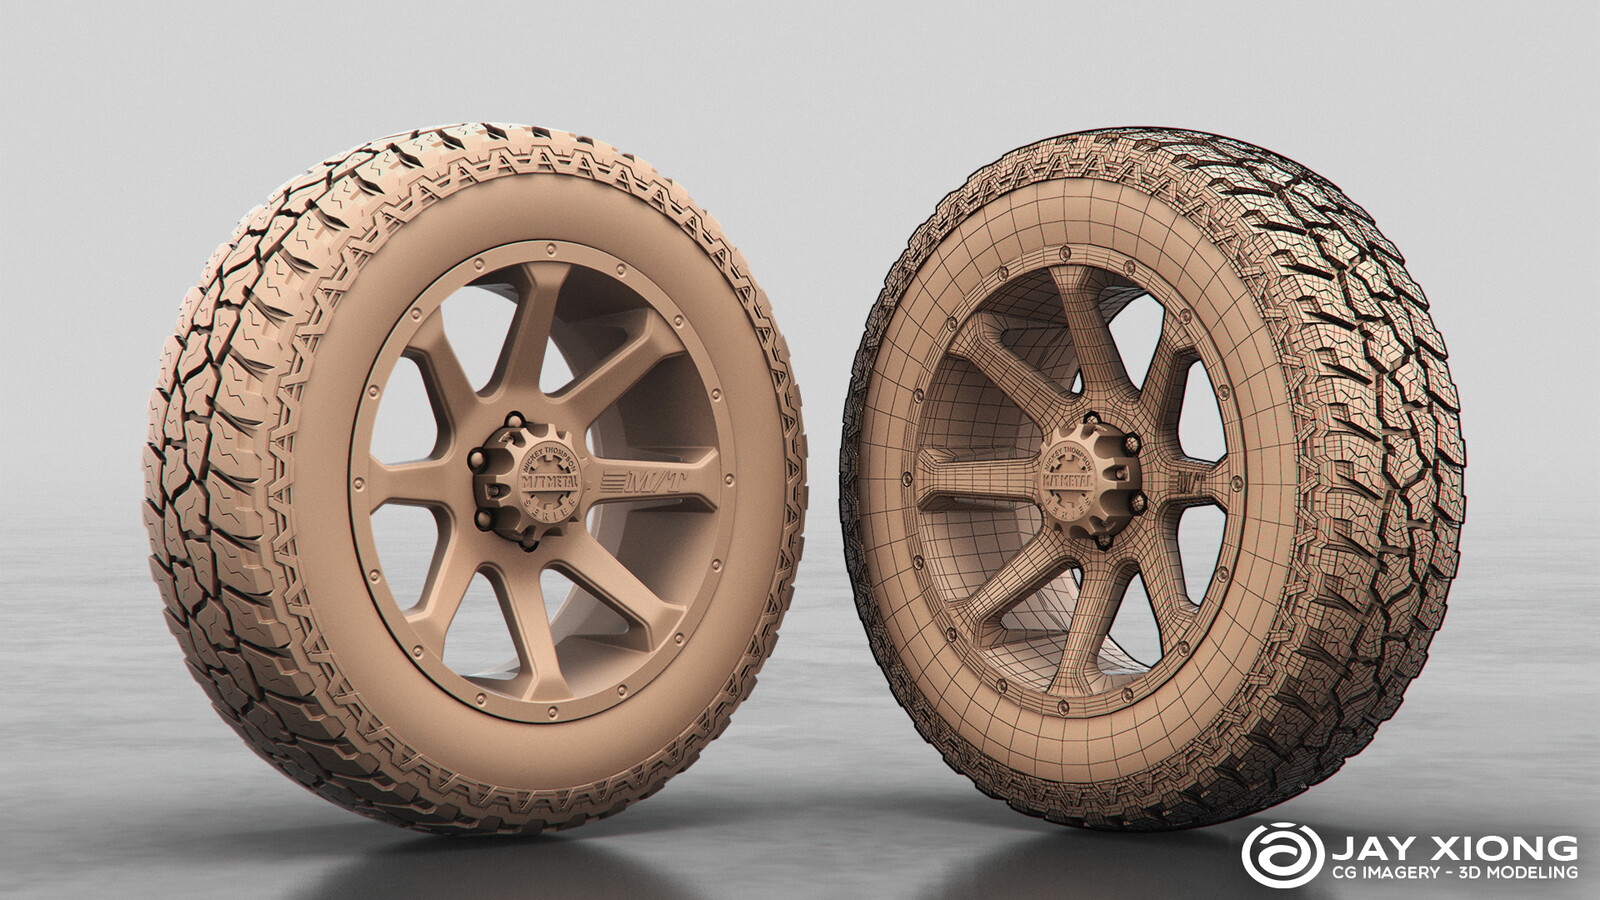 Mickey Thompson MM-366 Wheel & Mickey Thompson Baja ATZ Tire (CAD modeling for center cap and polygons for everything else)